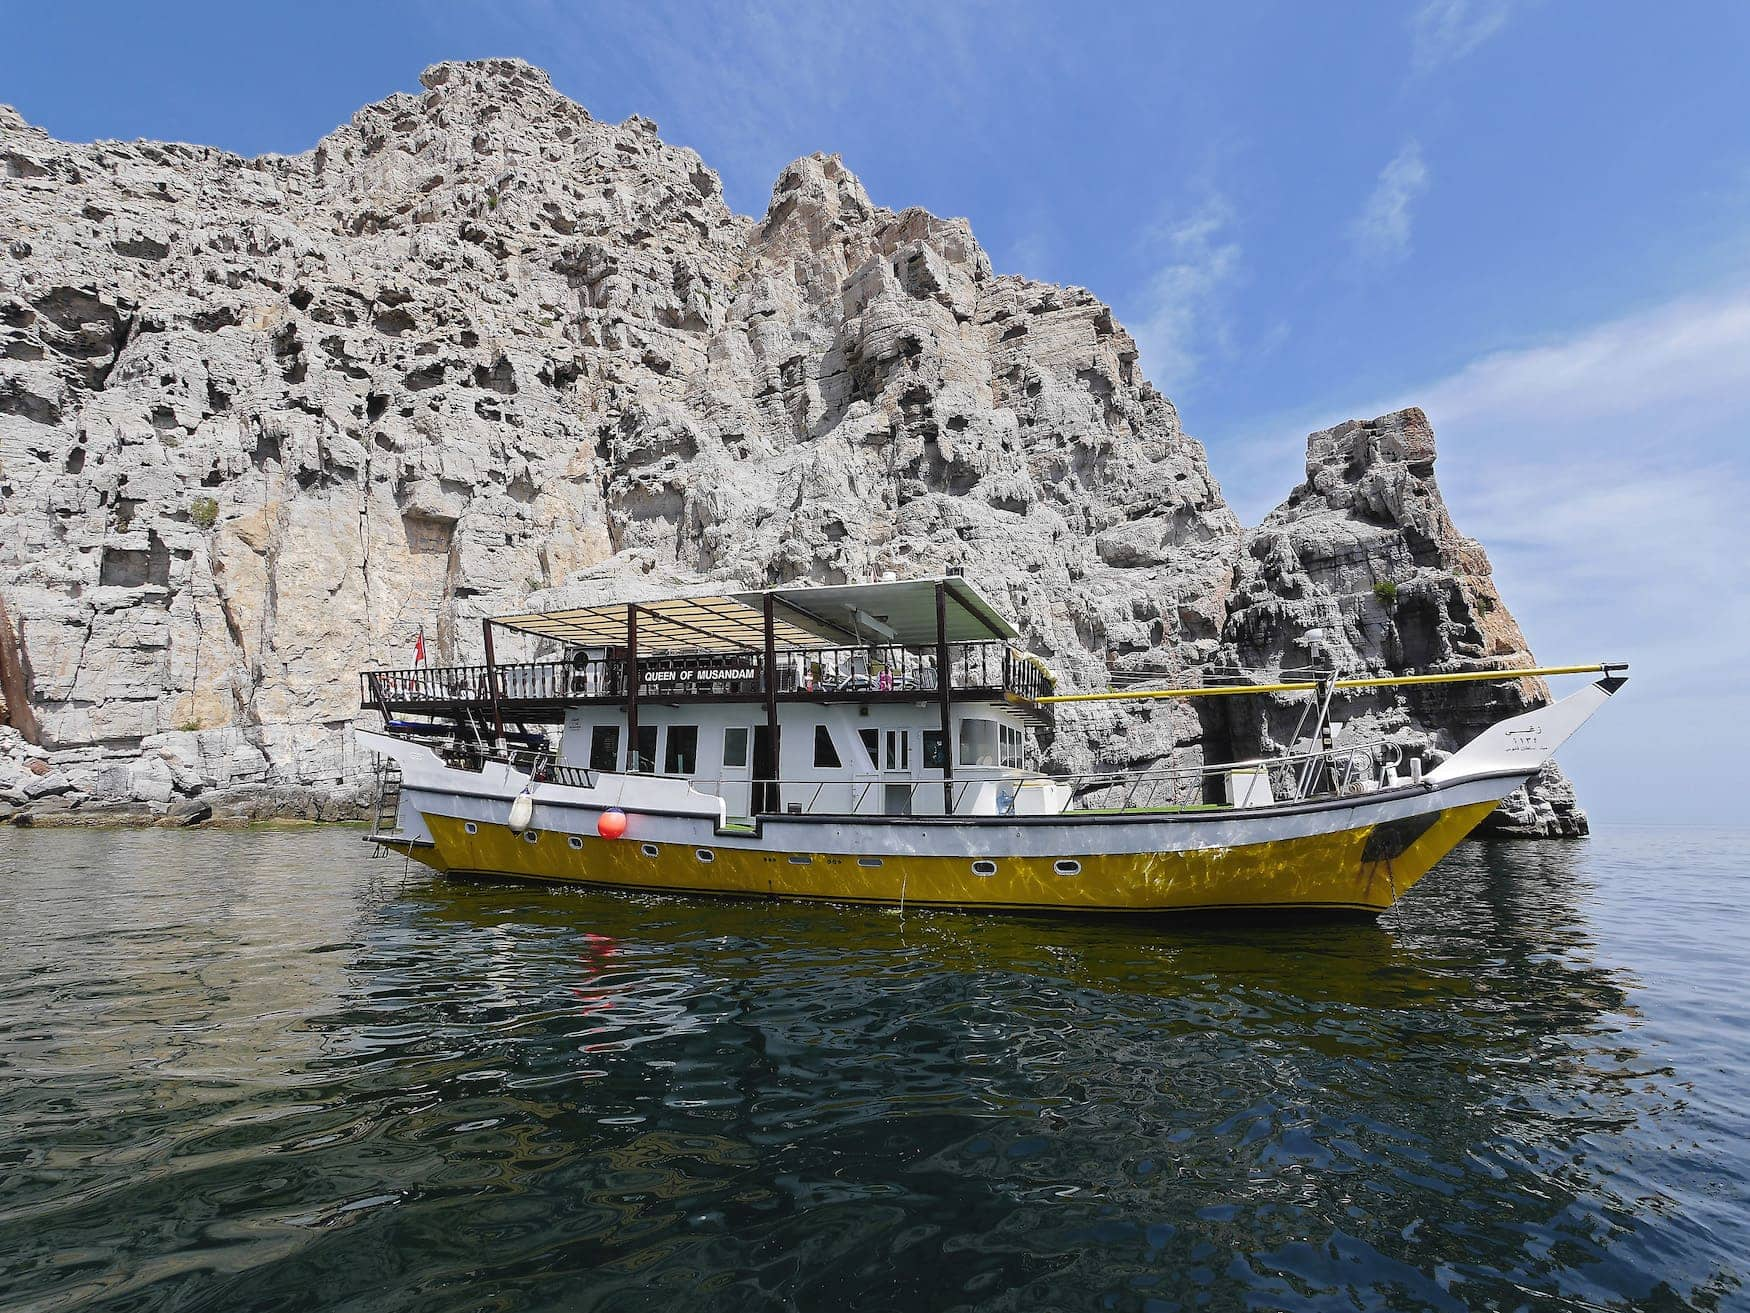 Tauchsafari im Oman: Queen of Musandam